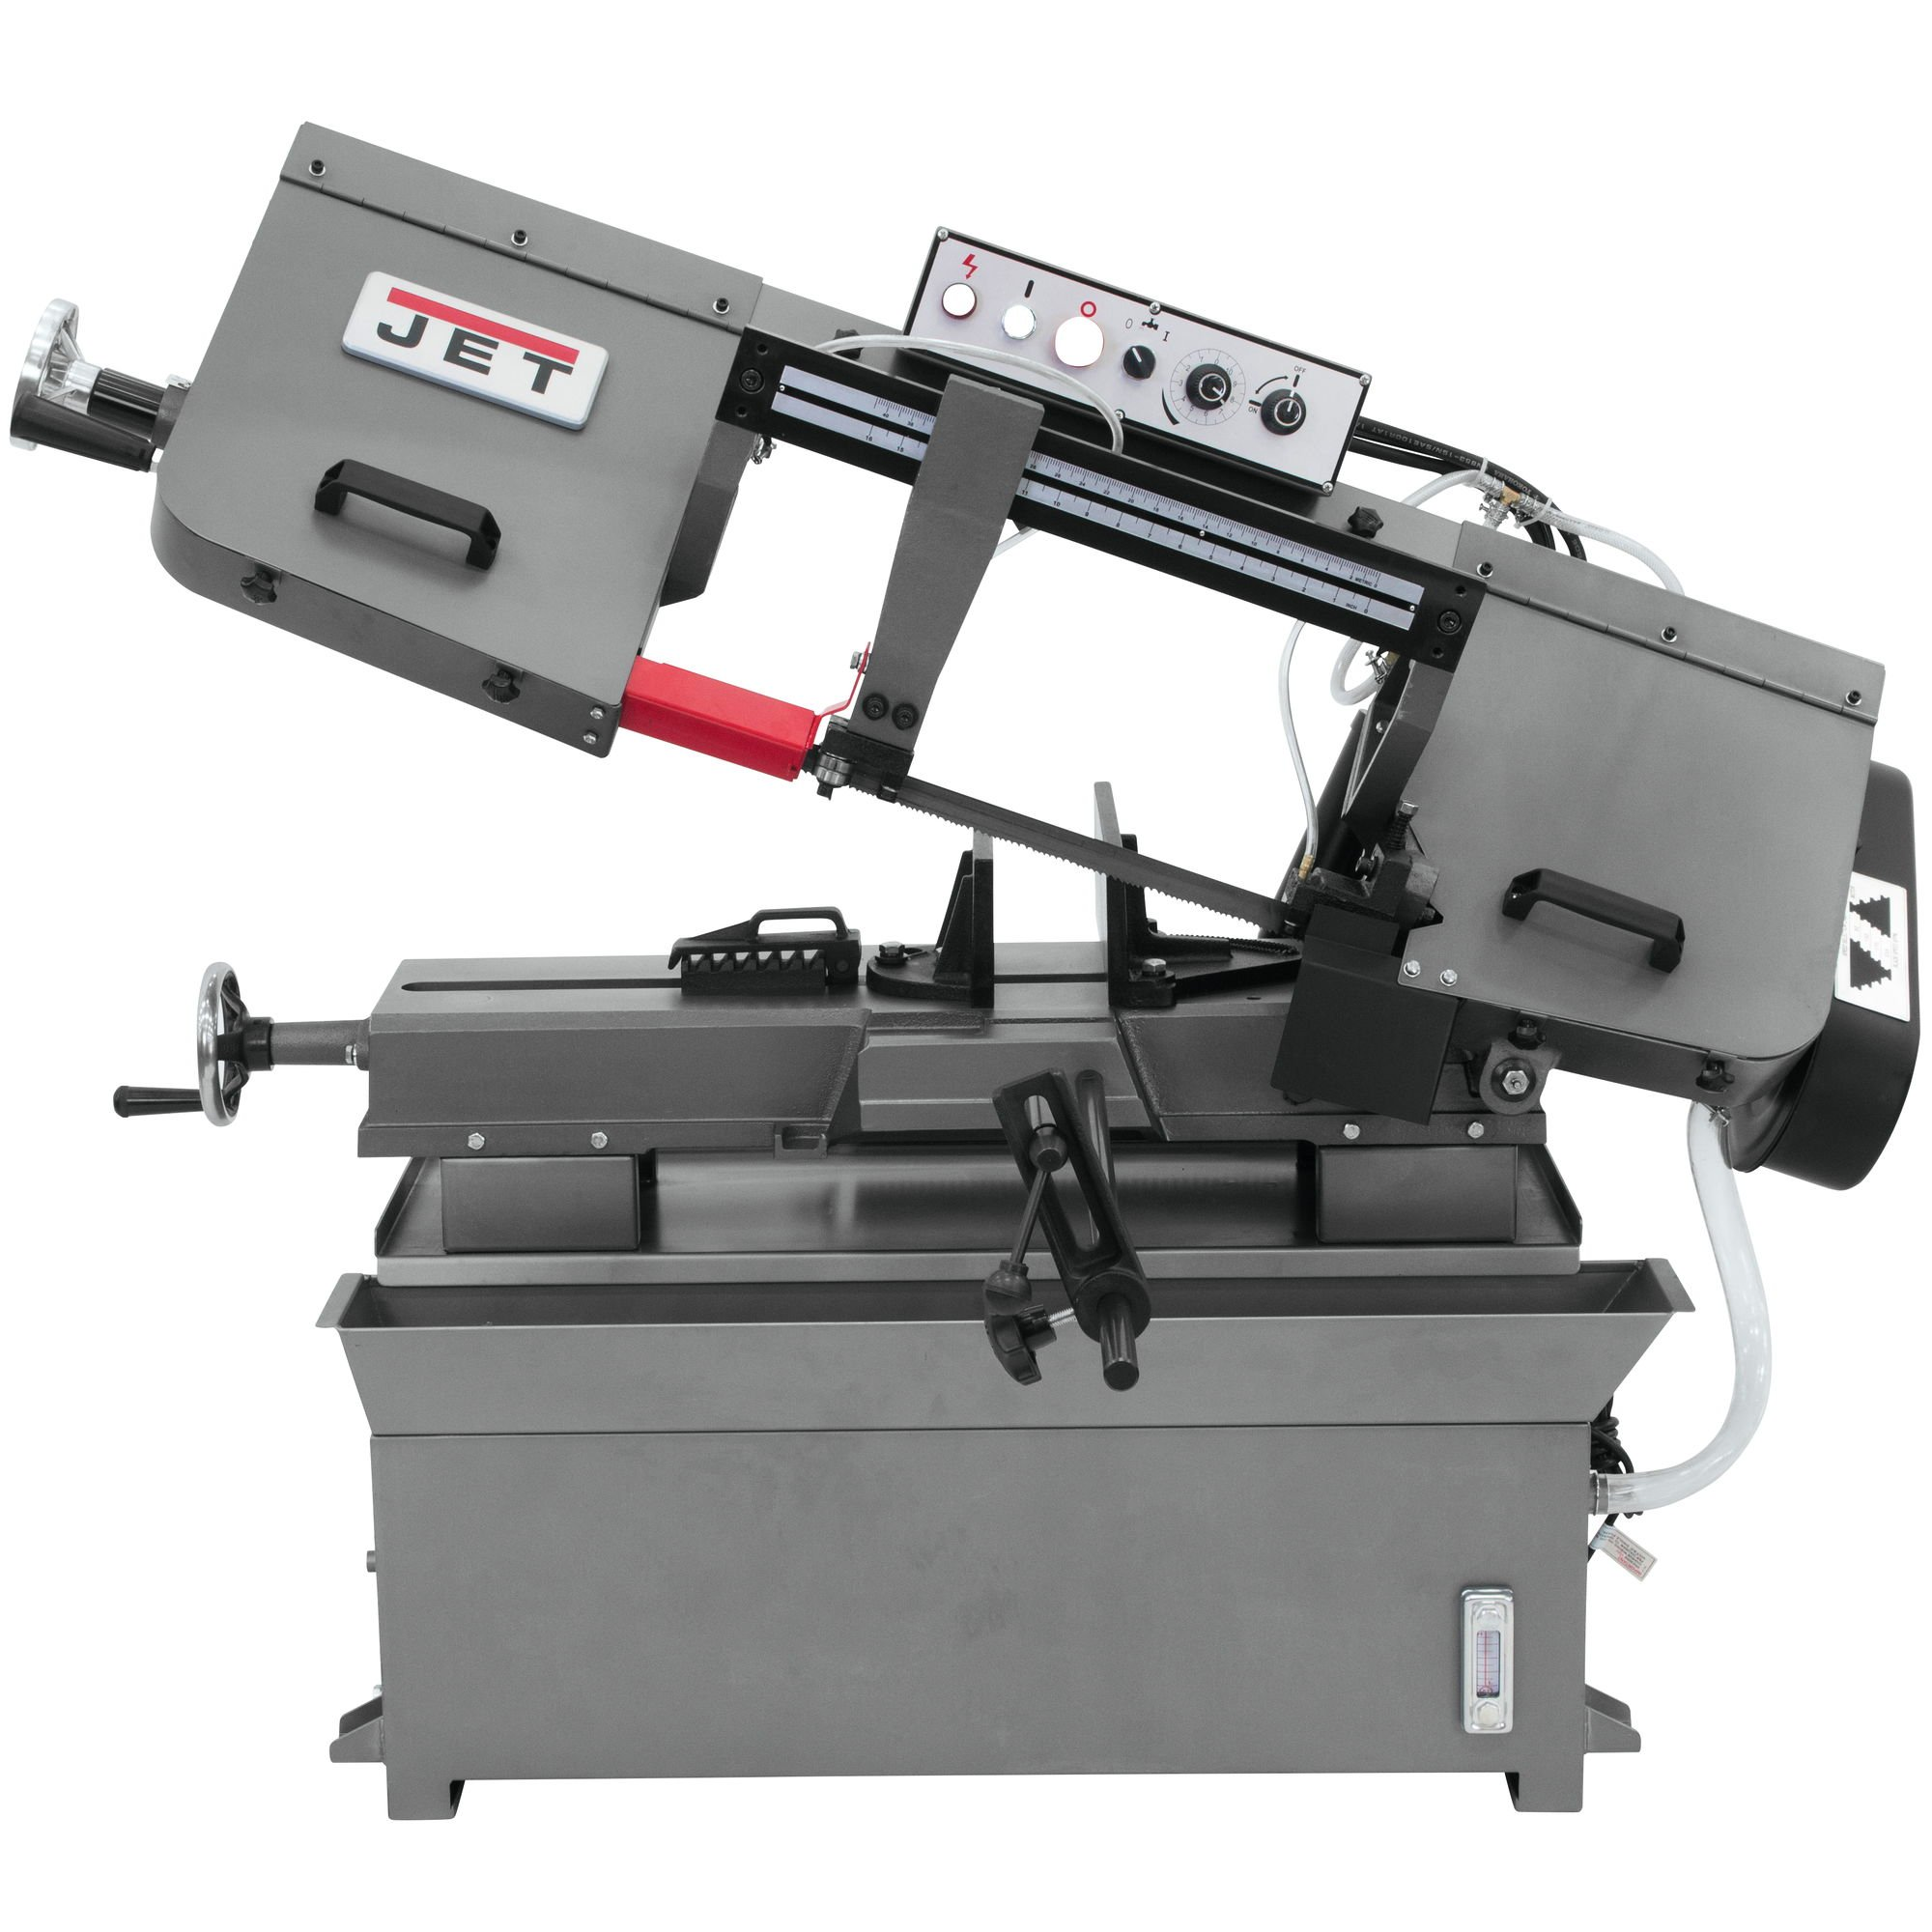 Jet HBS-916W 1-1/2 HP 115-Volt/230Volt 9-Inch by 16-Inch Capacity Horizontal Band Saw by WMH Tool Group (Image #1)